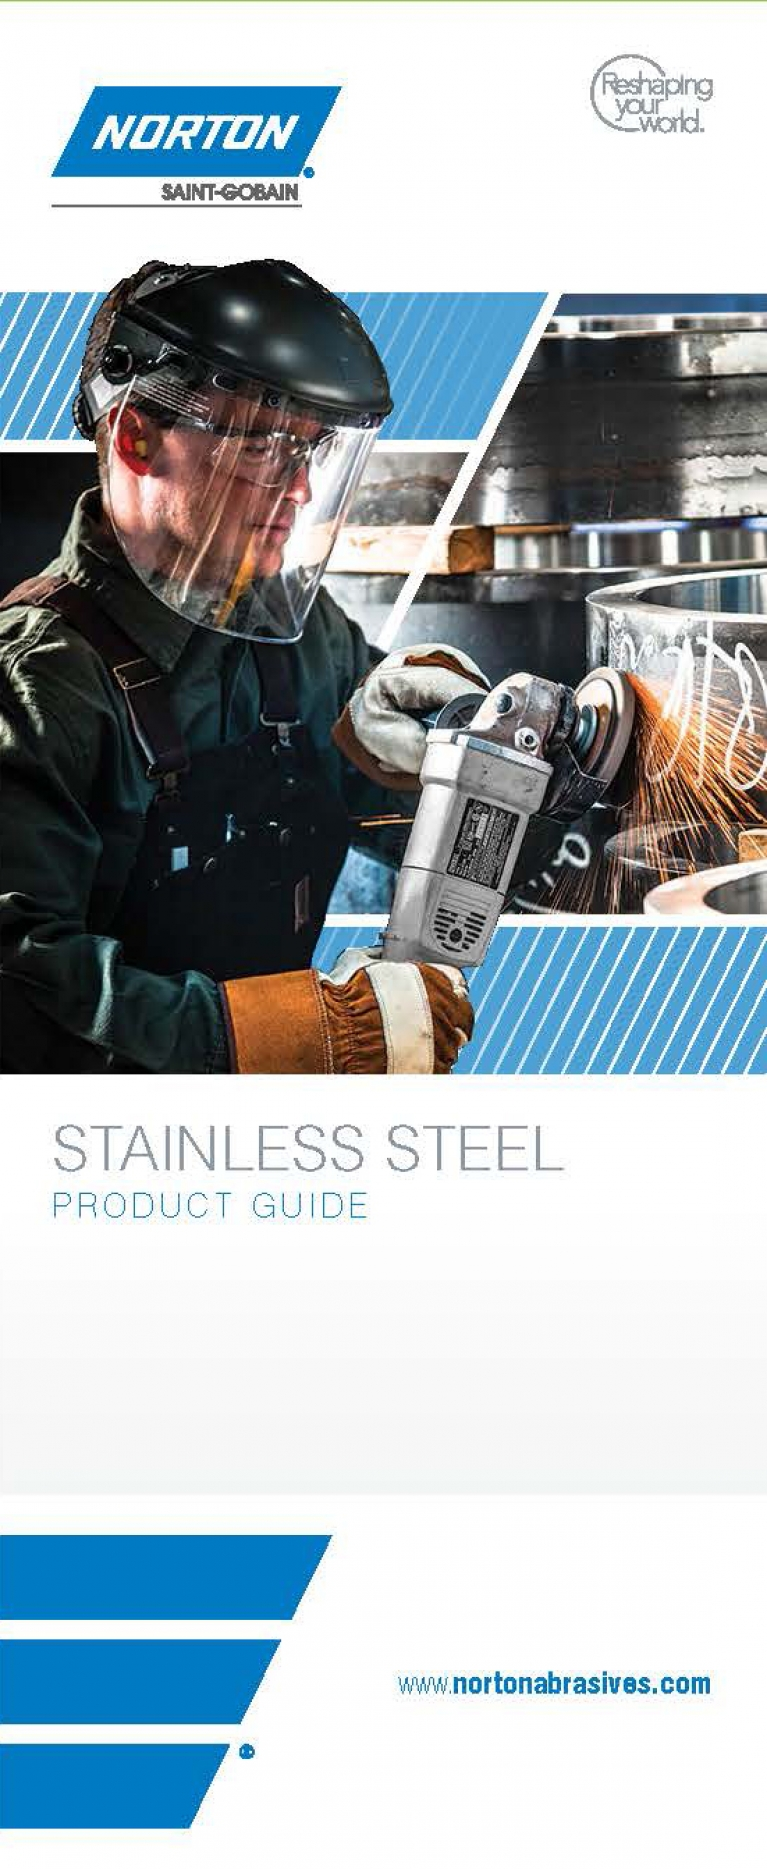 Norton Stainless Steel Product Guide - Brochure 8703